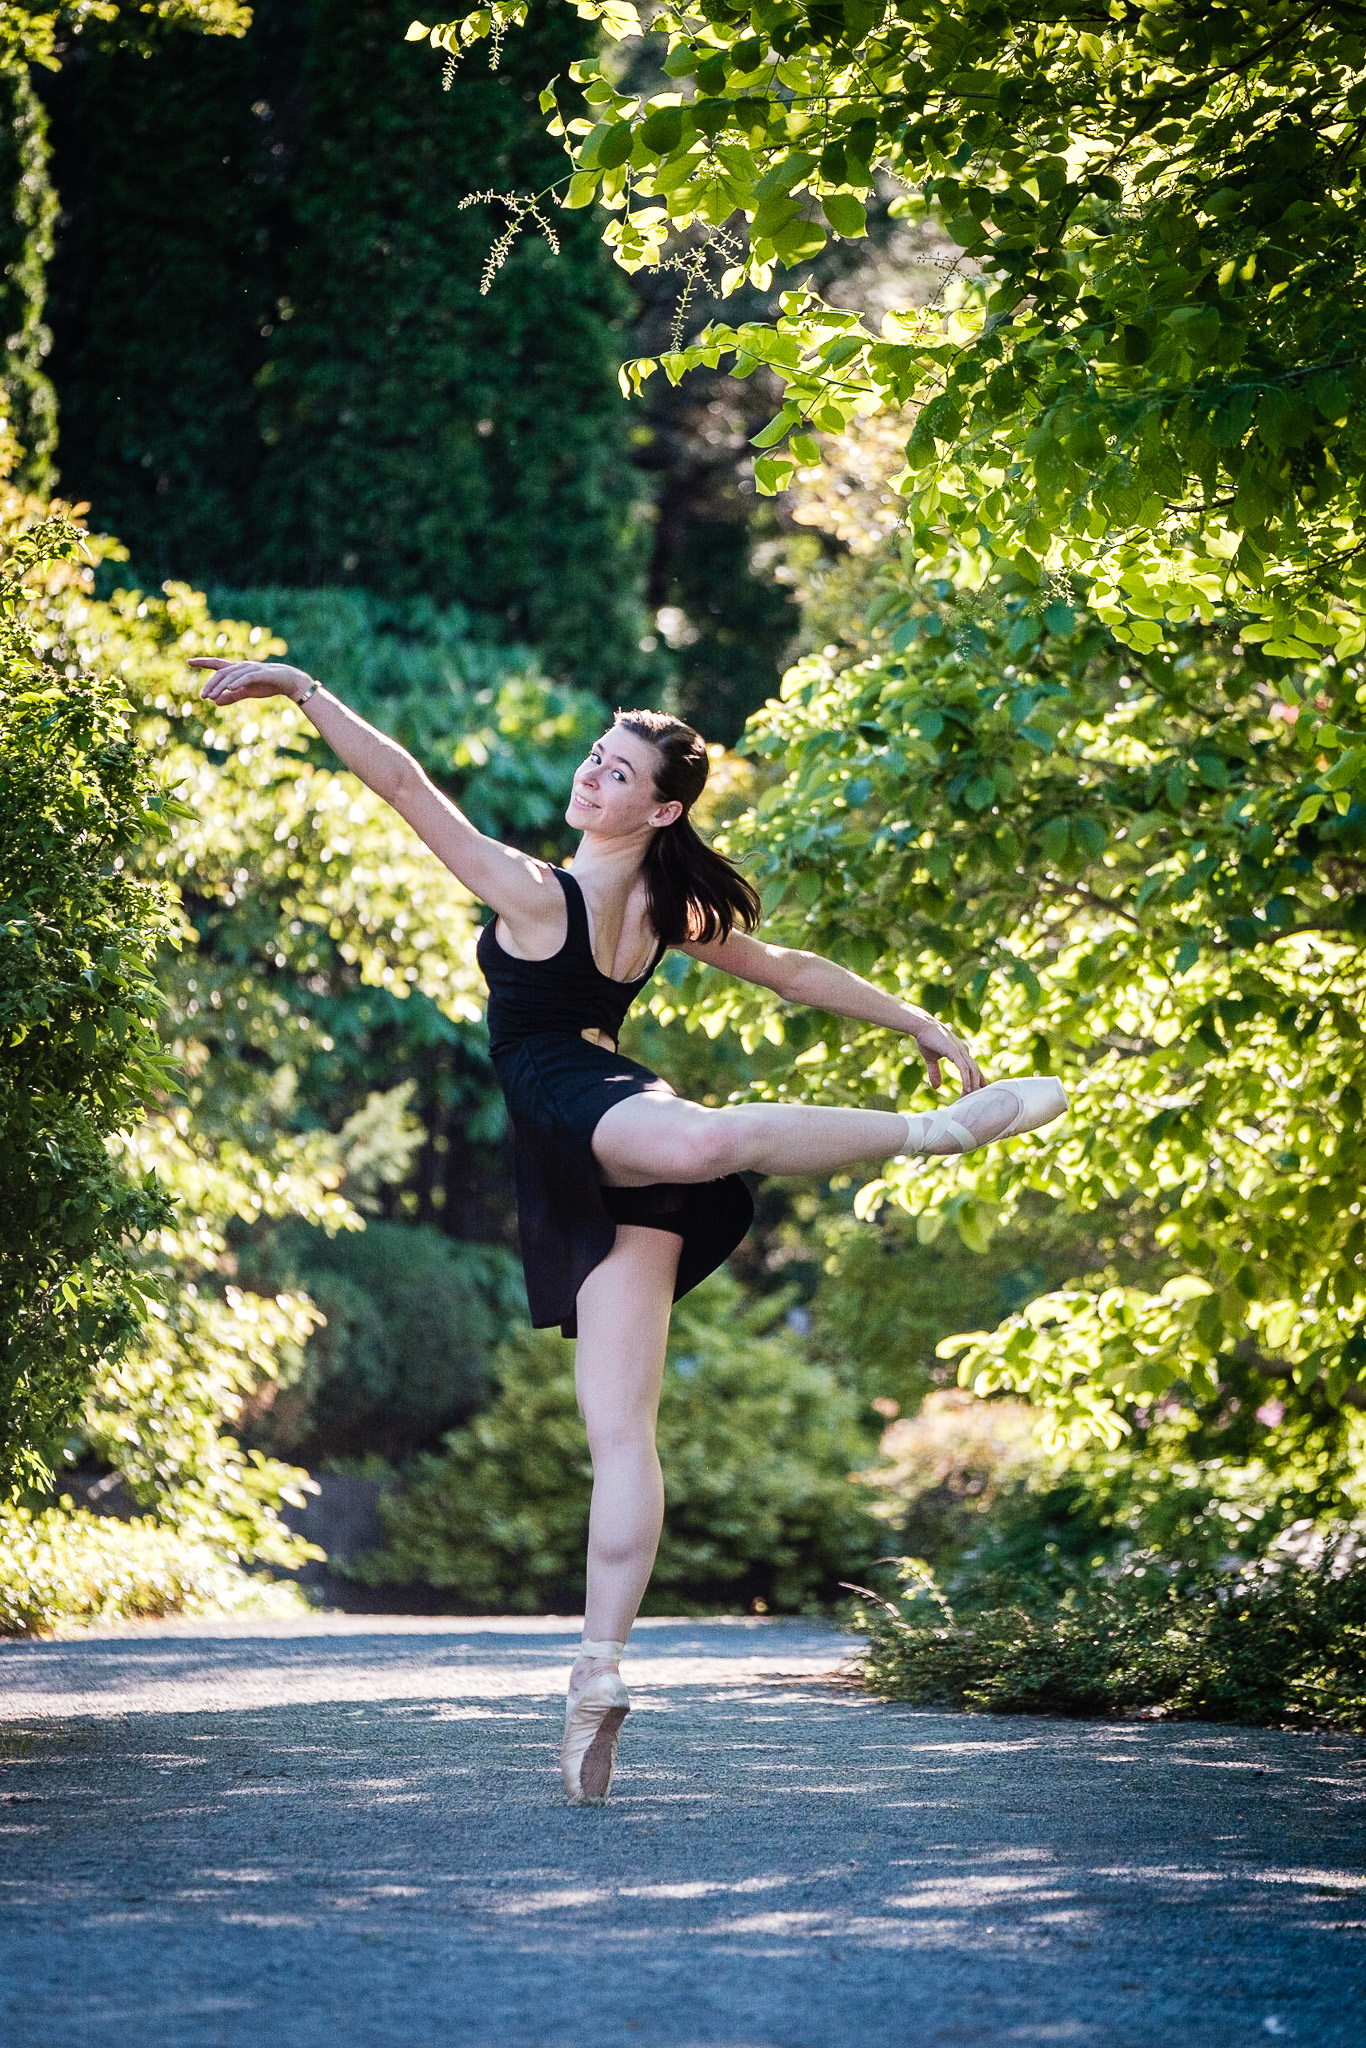 ballet dancer in montreal botanical garden